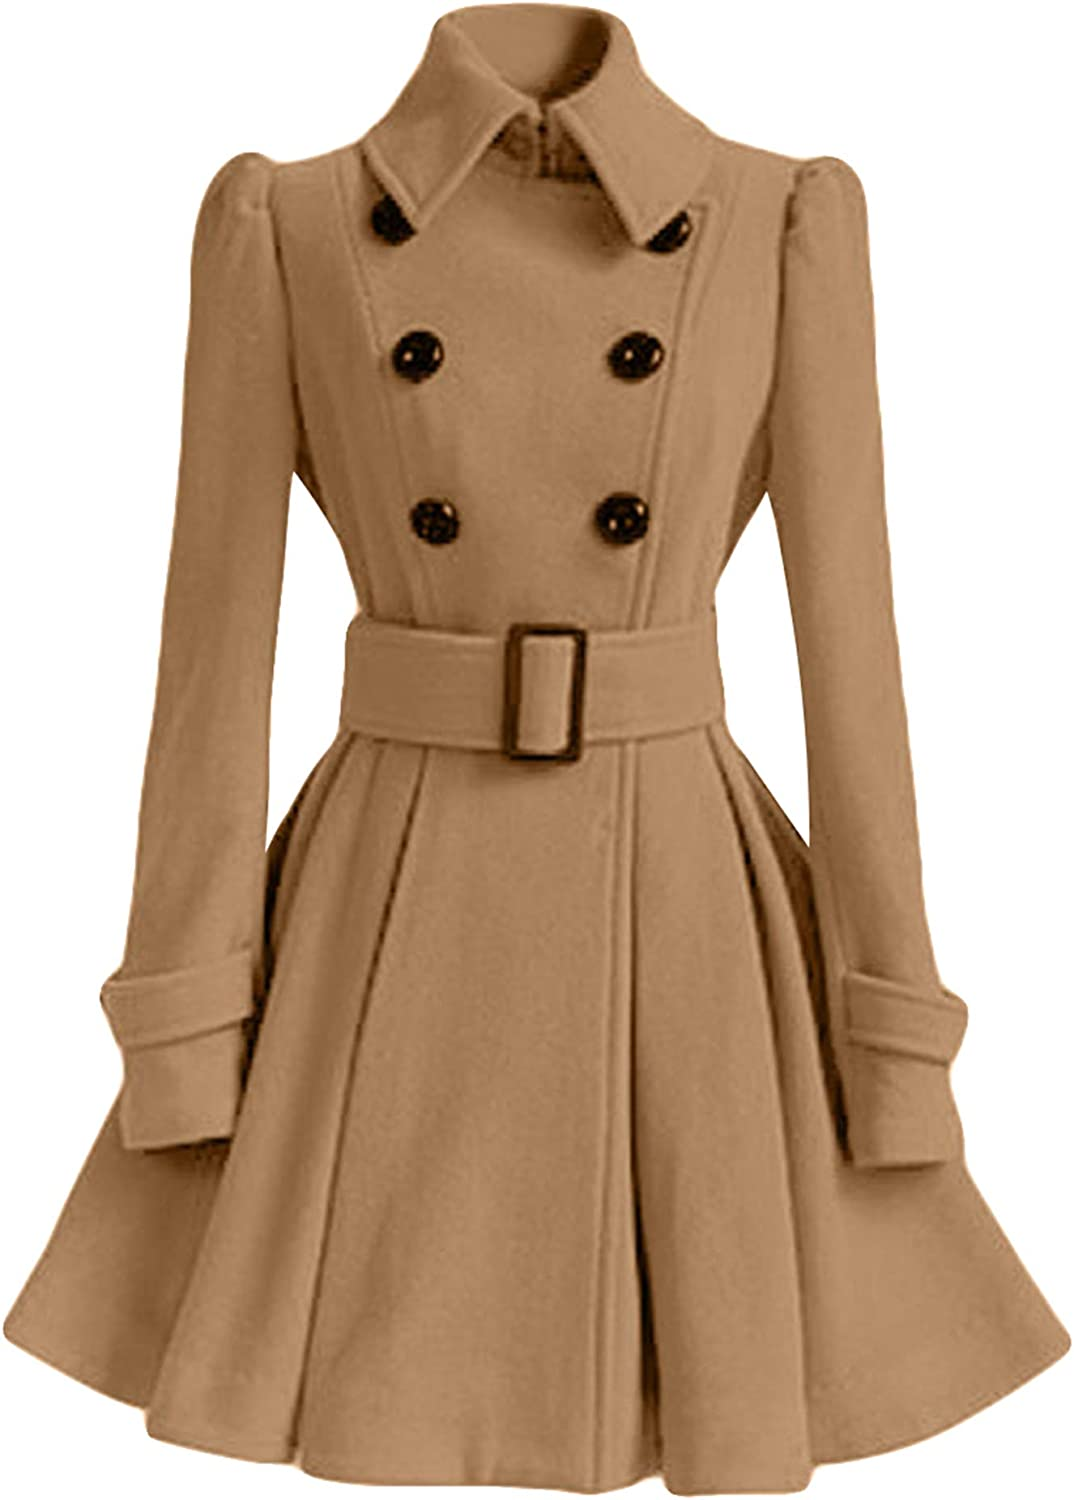 ZICUE Womens Vintage Double Breasted Pea Coat Winter Mid-Long Hooded Jackets with Belted